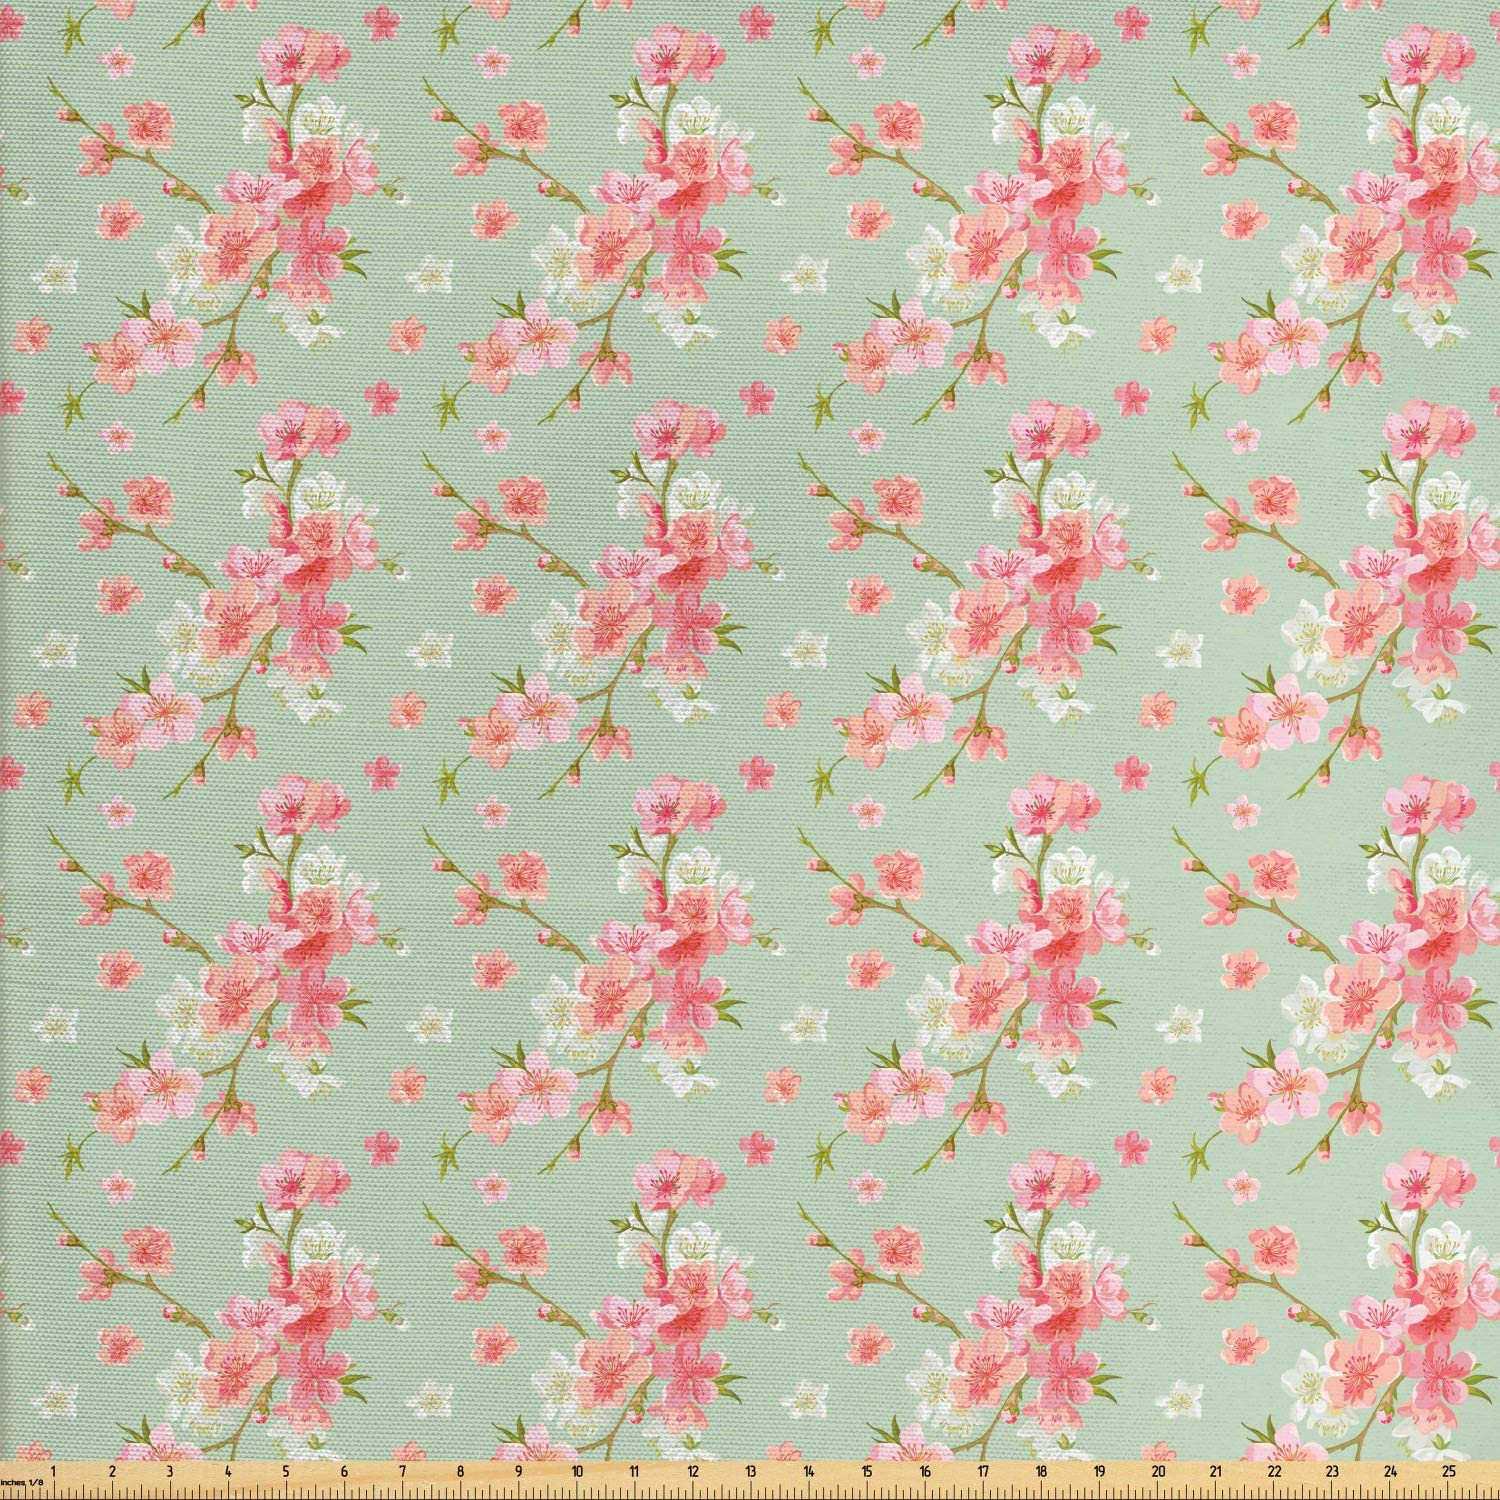 Ambesonne Shabby Flora Fabric by The Yard, Retro Spring Blossom Flowers with French Garden Florets Garland Artisan Image, Decorative Fabric for Upholstery and Home Accents, 3 Yards, Mint Pink